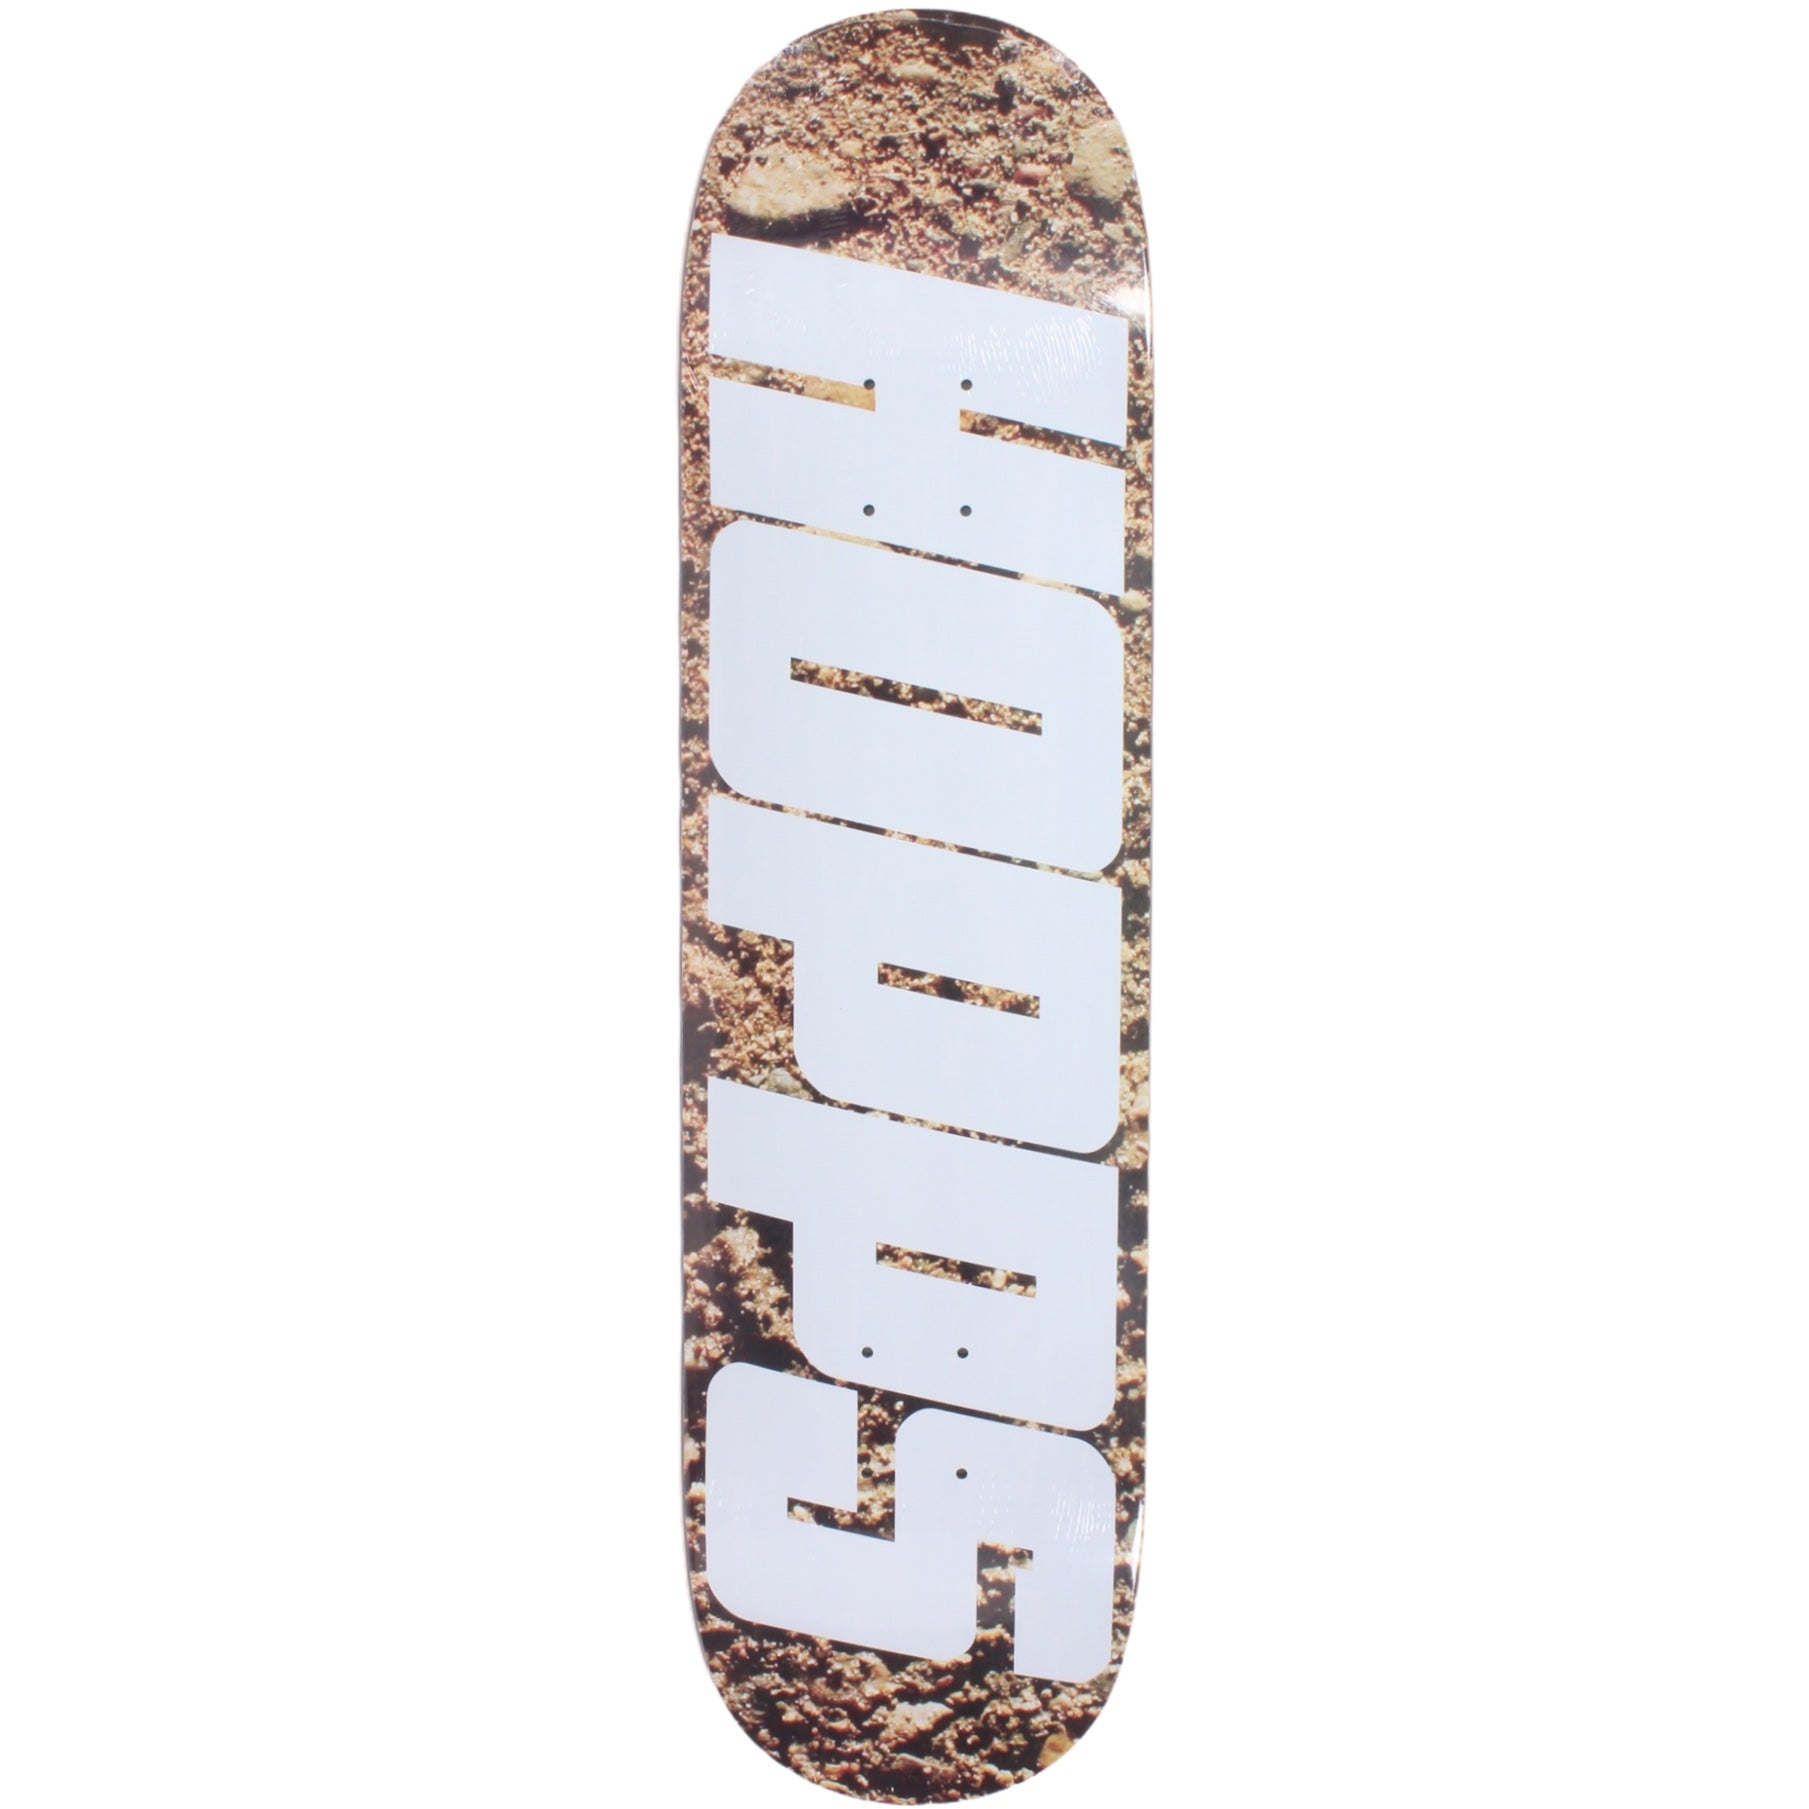 Hopps Big Hopps Earth Deck 8.125""